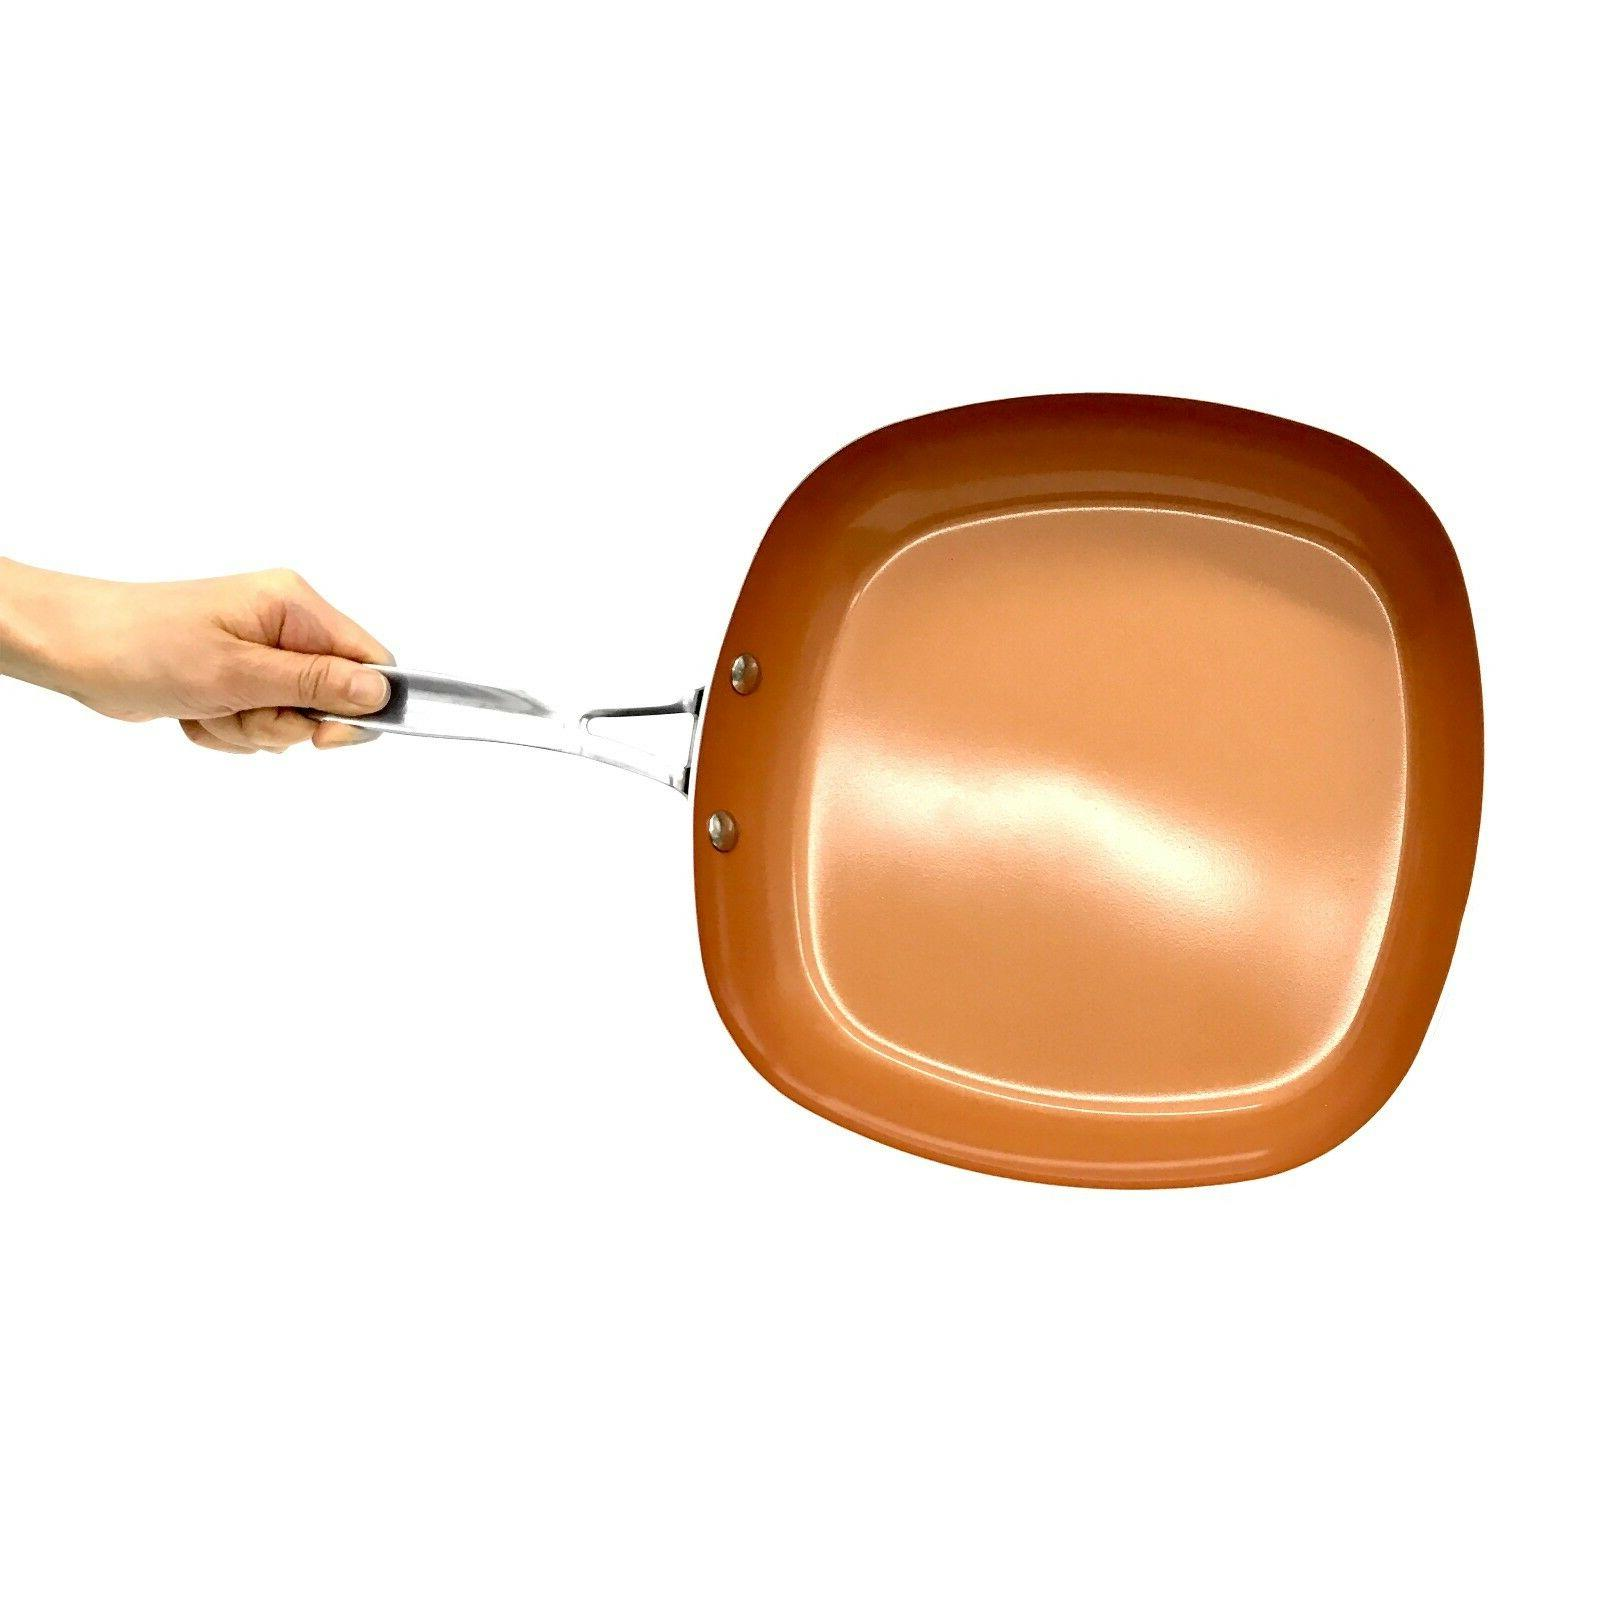 "As TV Gotham Steel 2"" Square Copper Pan- BRAND"